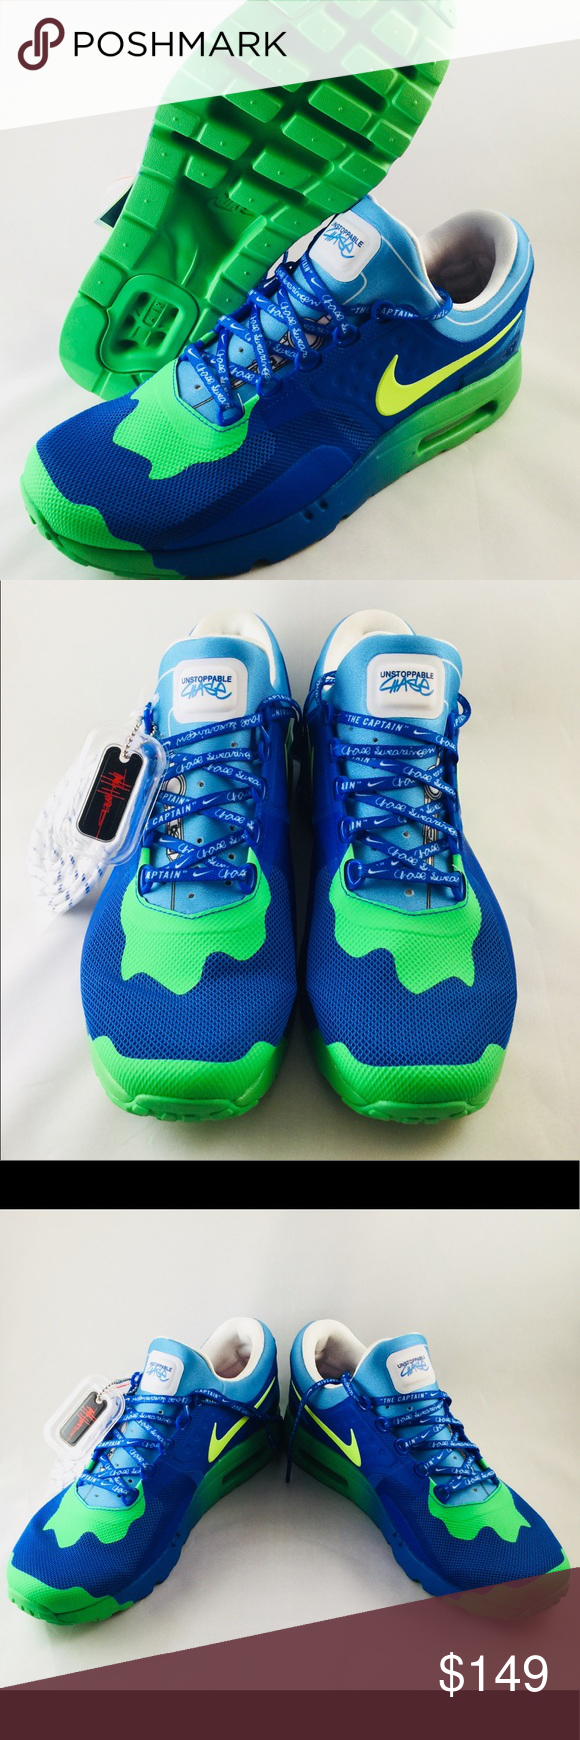 reputable site df1bc eee6f Nike Air Max Zero DB Doernbecher Hyper Mens Sz10.5 Brand new in Box Nike  Air Max Zero DB shoes featuring a hyper cobalt and volt color scheme.